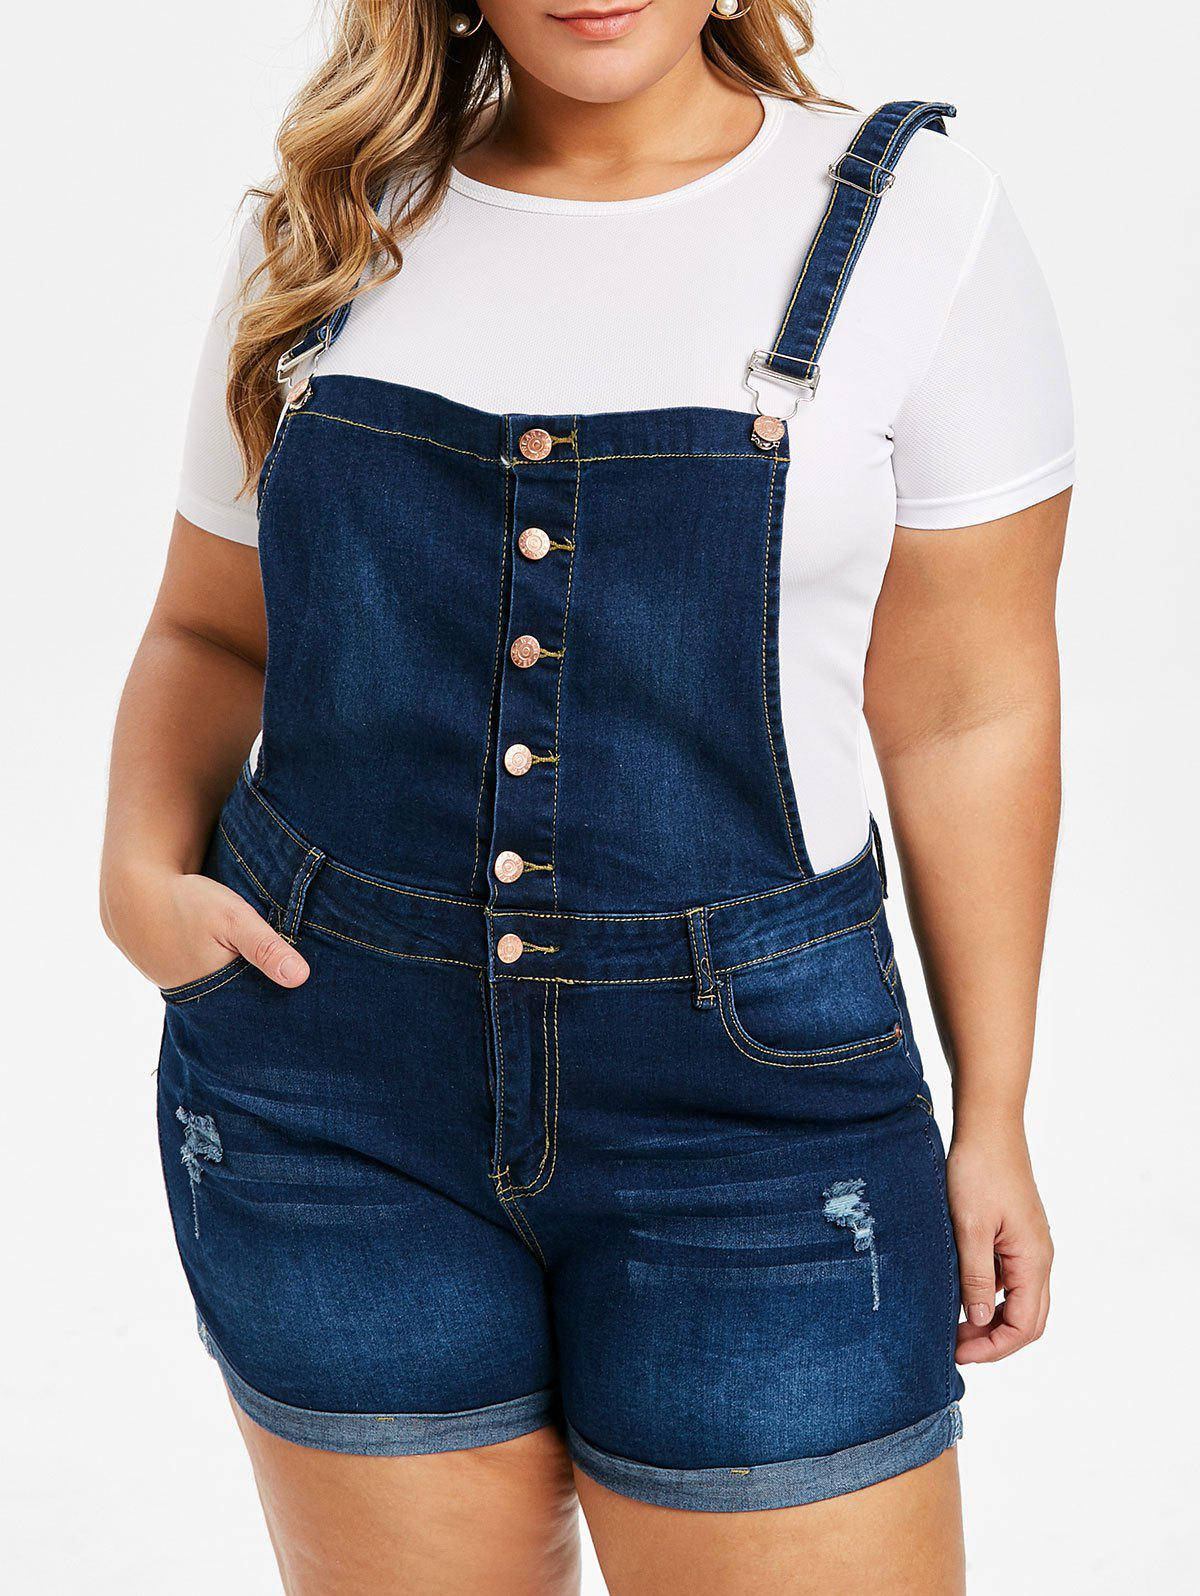 Trendy Plus Size Cuffed Distressed Denim Overall Shorts